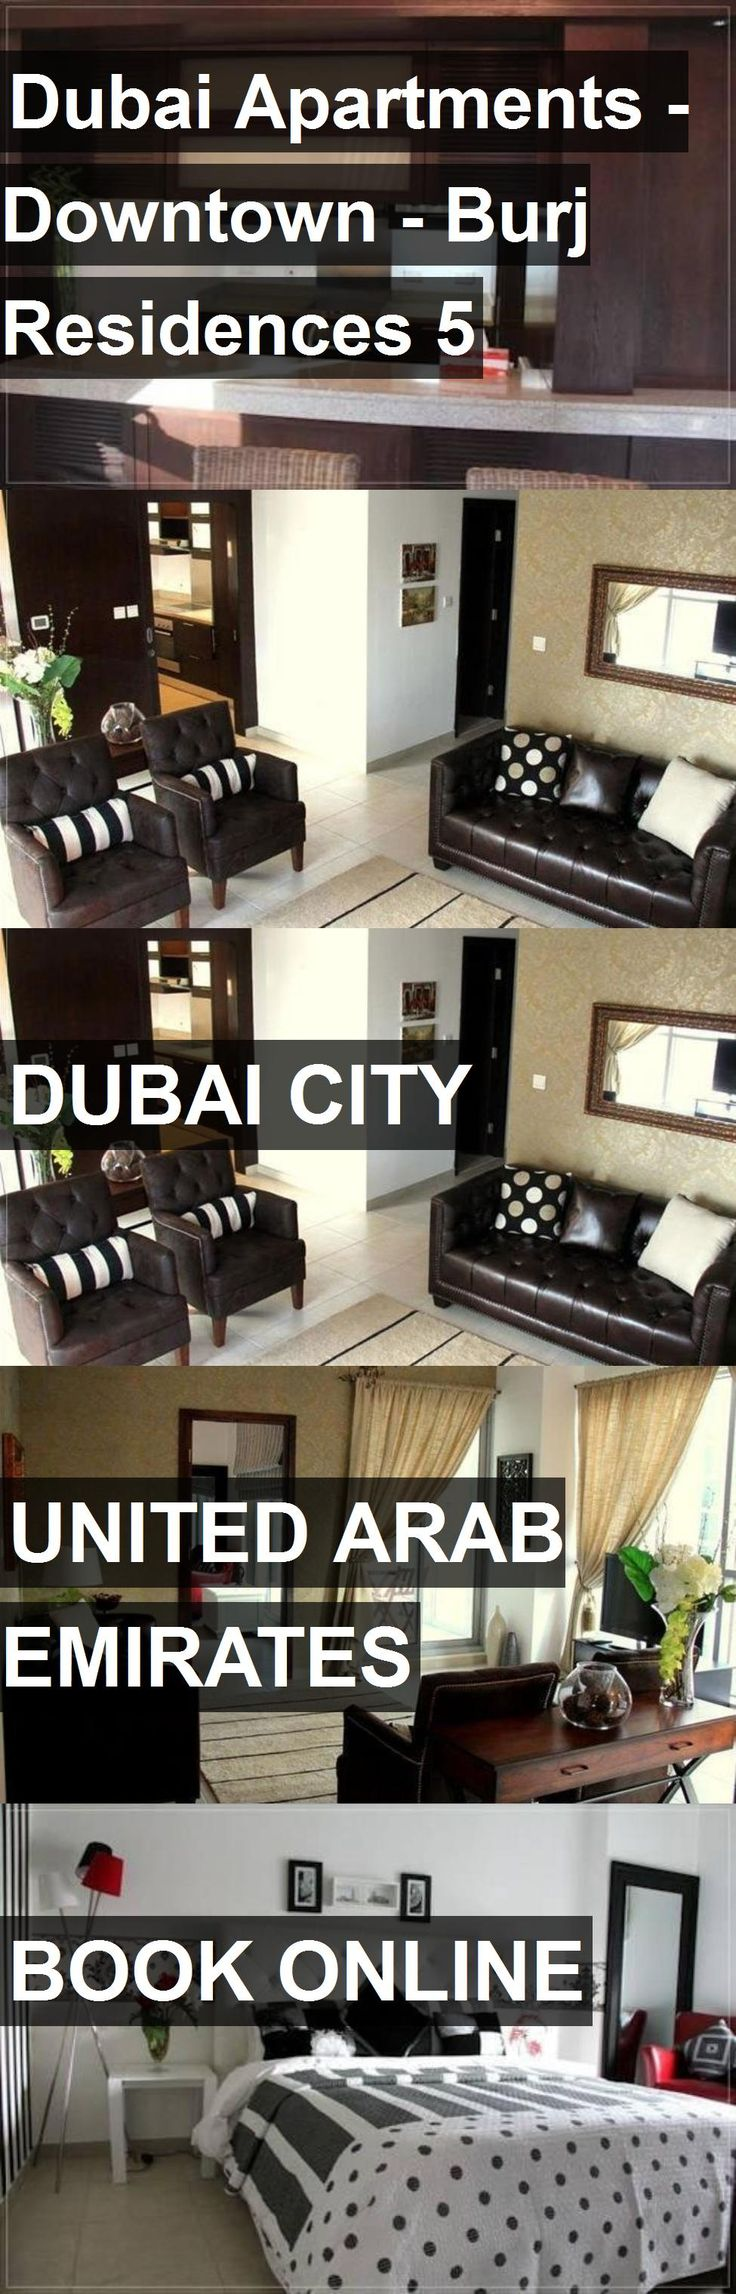 Hotel Dubai Apartments - Downtown - Burj Residences 5 in Dubai City, United Arab Emirates. For more information, photos, reviews and best prices please follow the link. #UnitedArabEmirates #DubaiCity #DubaiApartments-Downtown-BurjResidences5 #hotel #travel #vacation